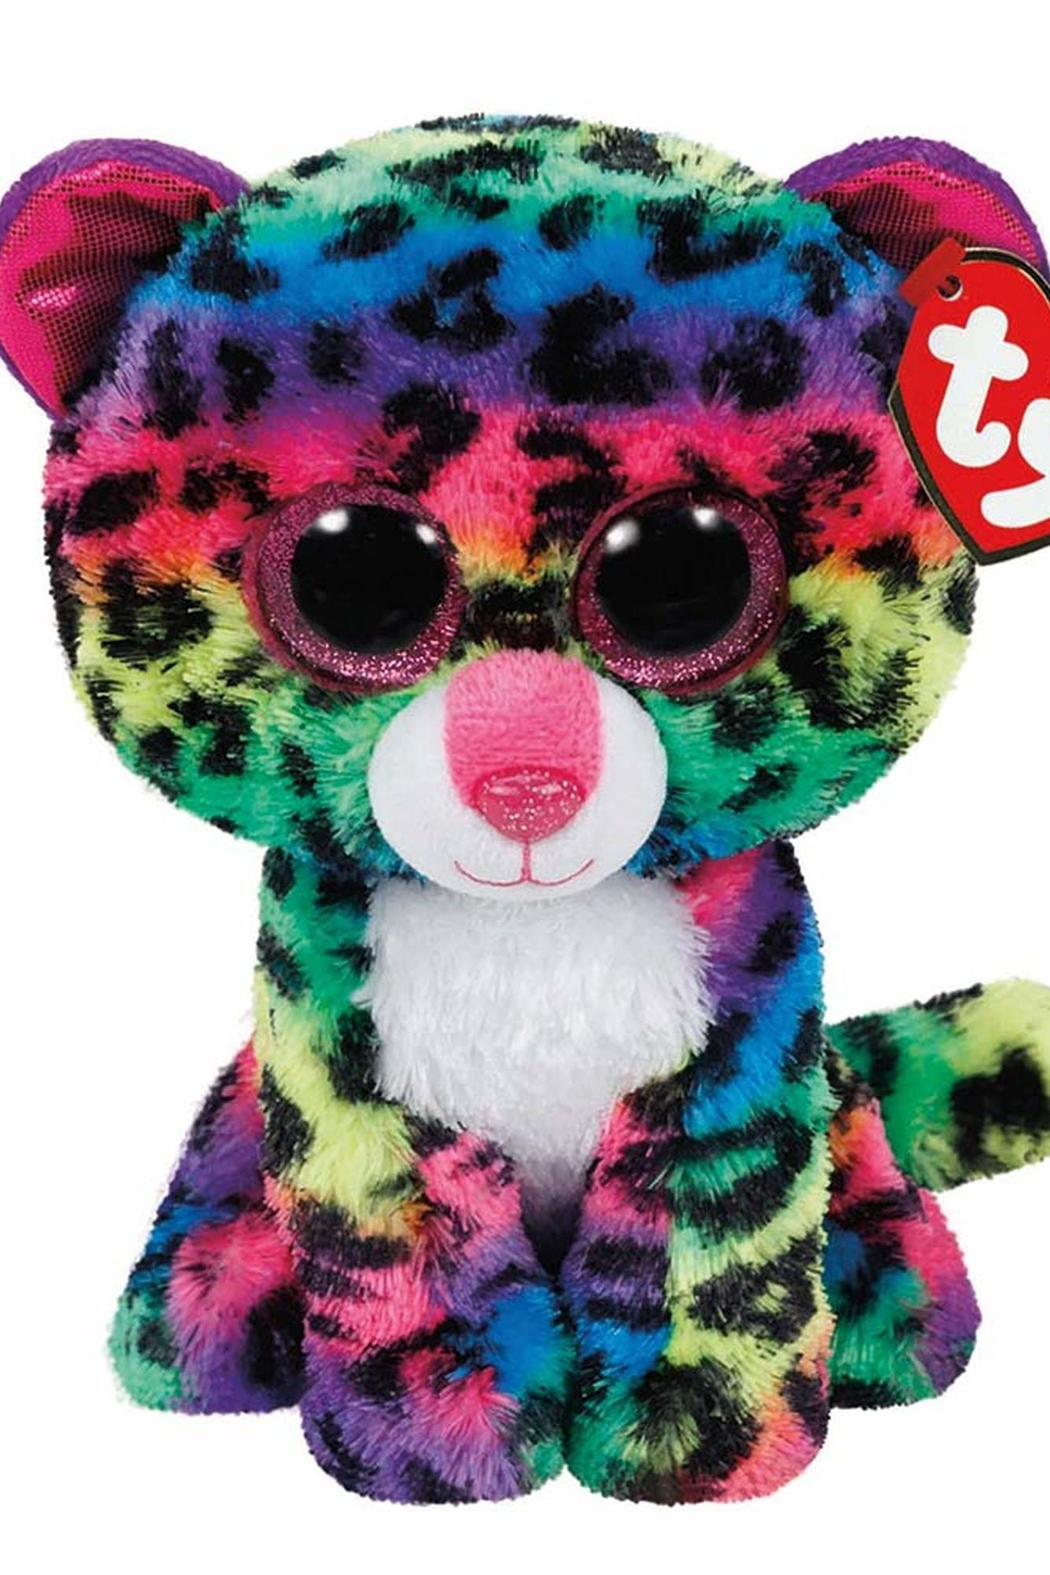 7d8f204568de Other Beanie Boo Dotty from Florida by Not Your Typical Dress ...